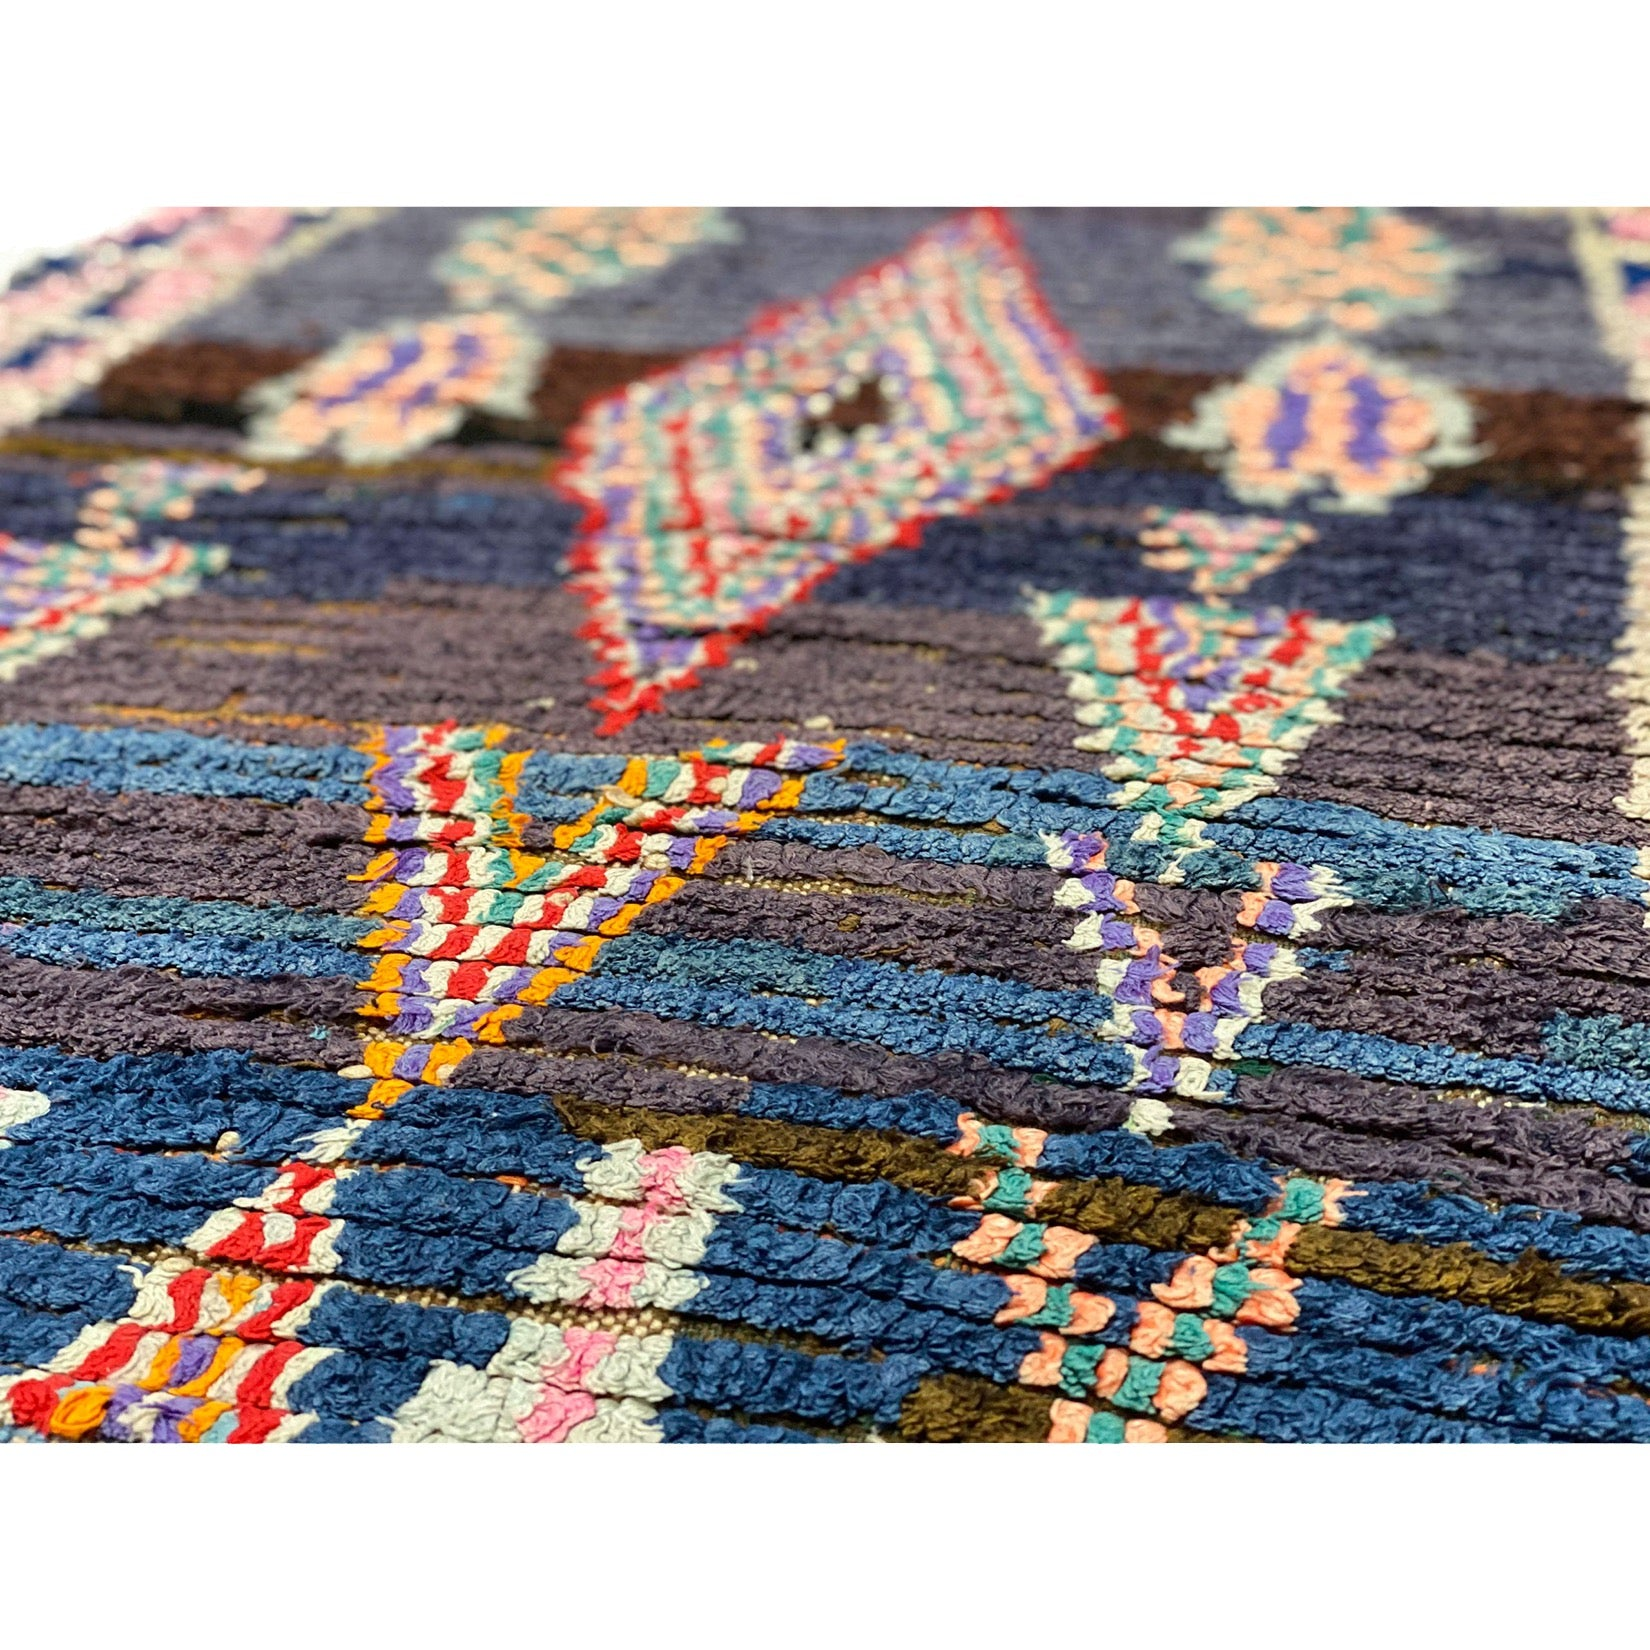 Modern Moroccan rag rug with colorful geometric design - Kantara | Moroccan Rugs